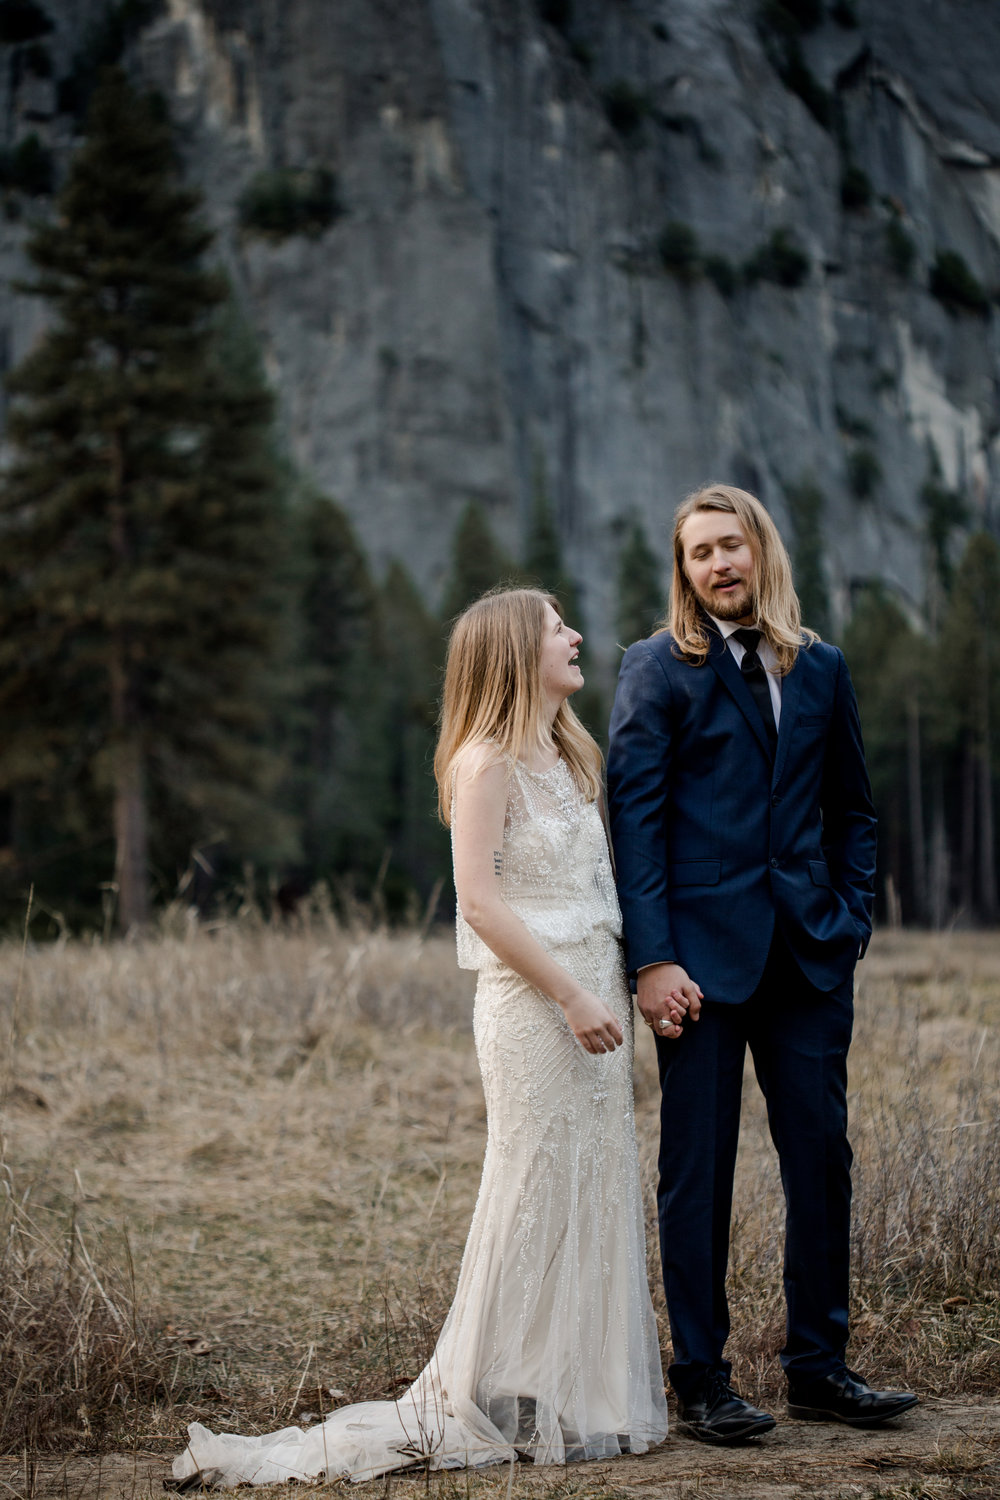 nicole-daacke-photography-yousemite-national-park-elopement-photographer-winter-cloud-moody-elope-inspiration-yosemite-valley-tunnel-view-winter-cloud-fog-weather-wedding-photos-64.jpg